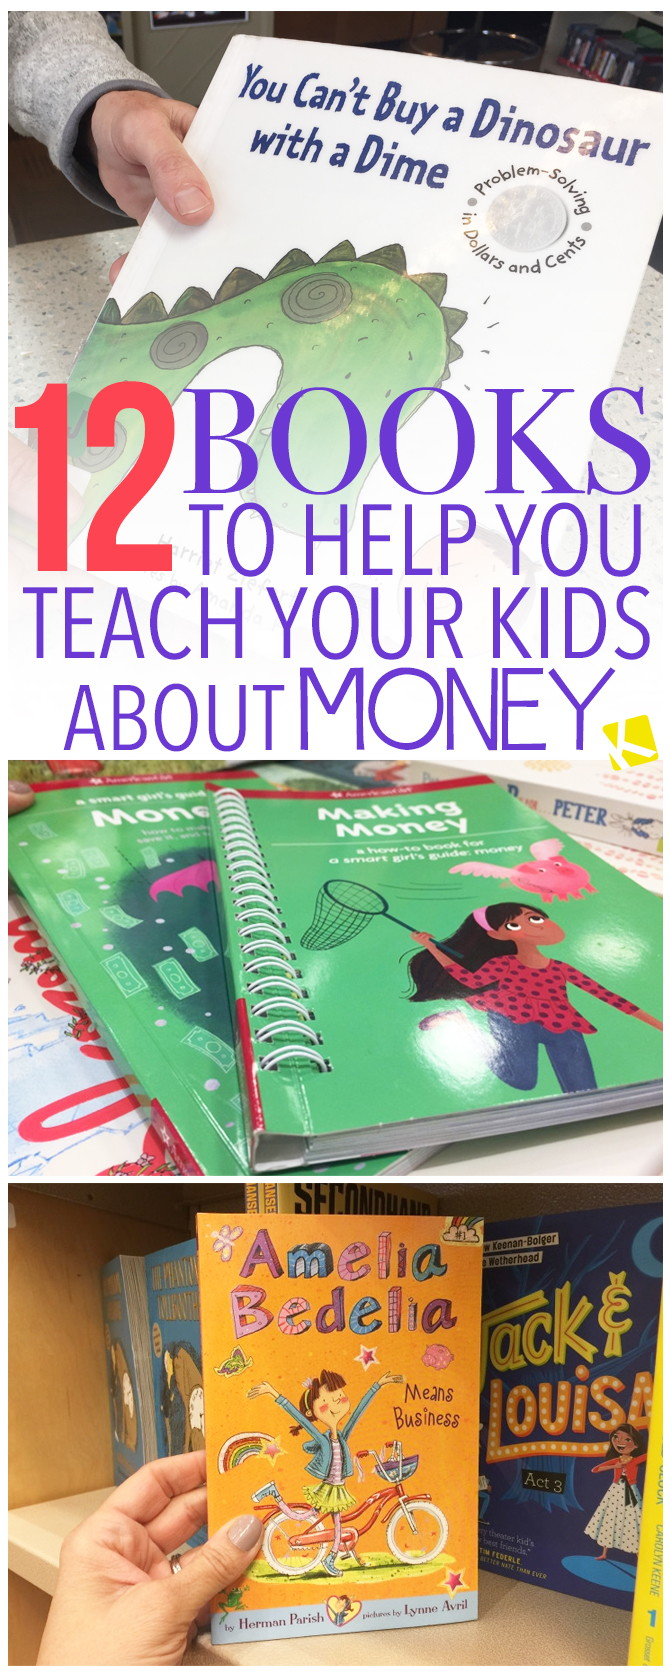 12 Books to Help You Teach Your Kids About Money